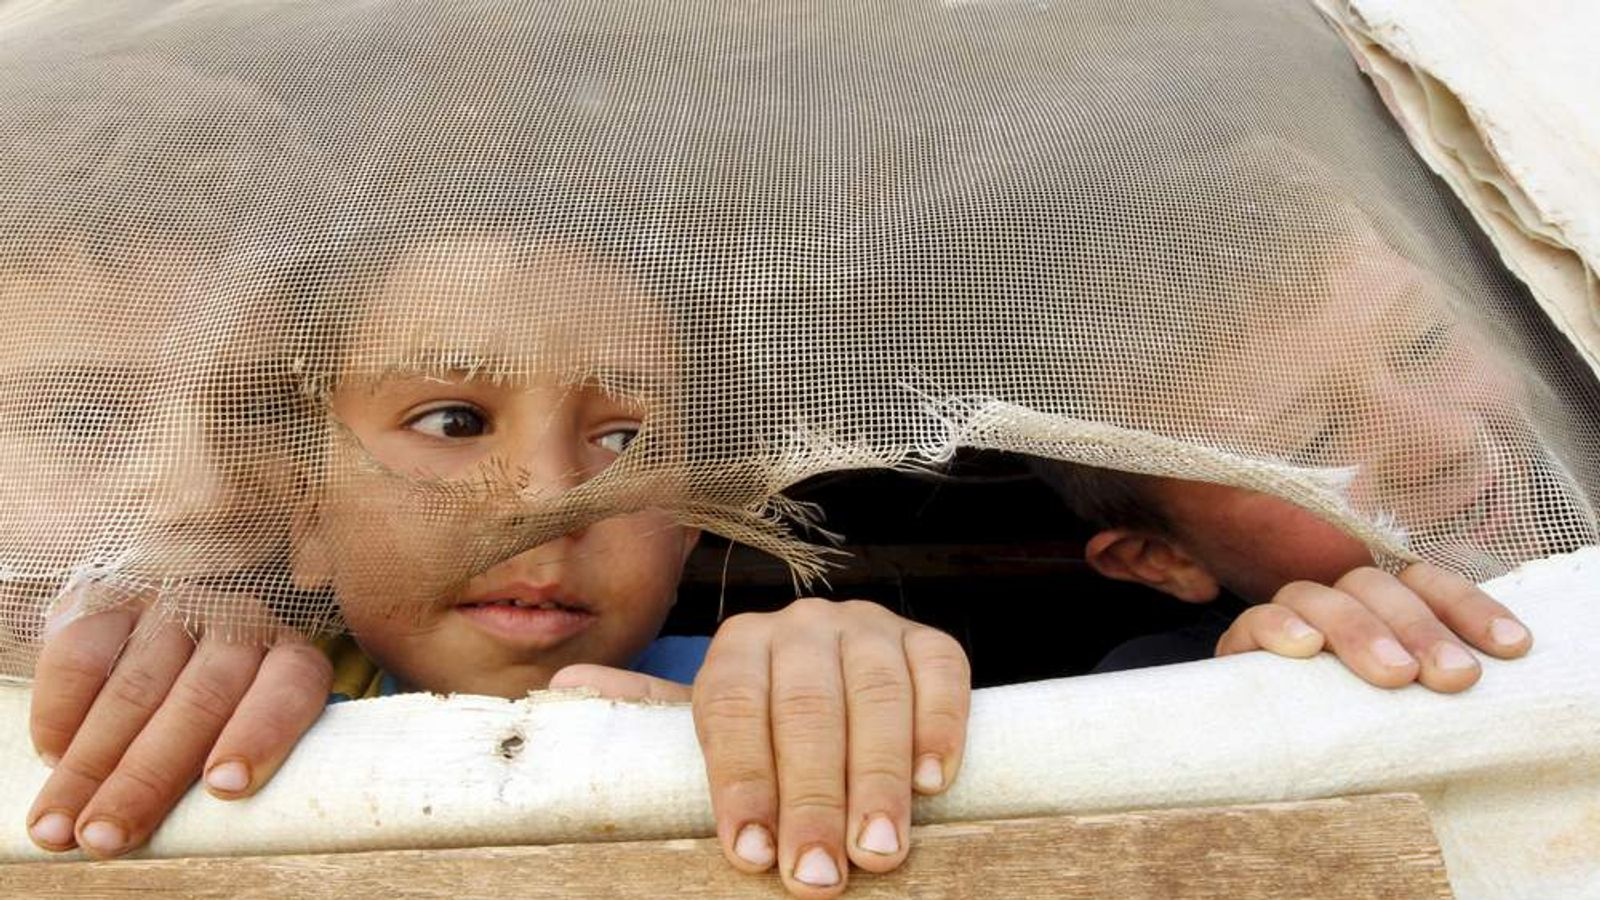 Syrian refugee children look out from their tent during a visit by U.N. Humanitarian Chief and Emergency Relief Coordinator O'Brien to their makeshift settlement in Saadnayel in Lebanon's Bekaa Valley